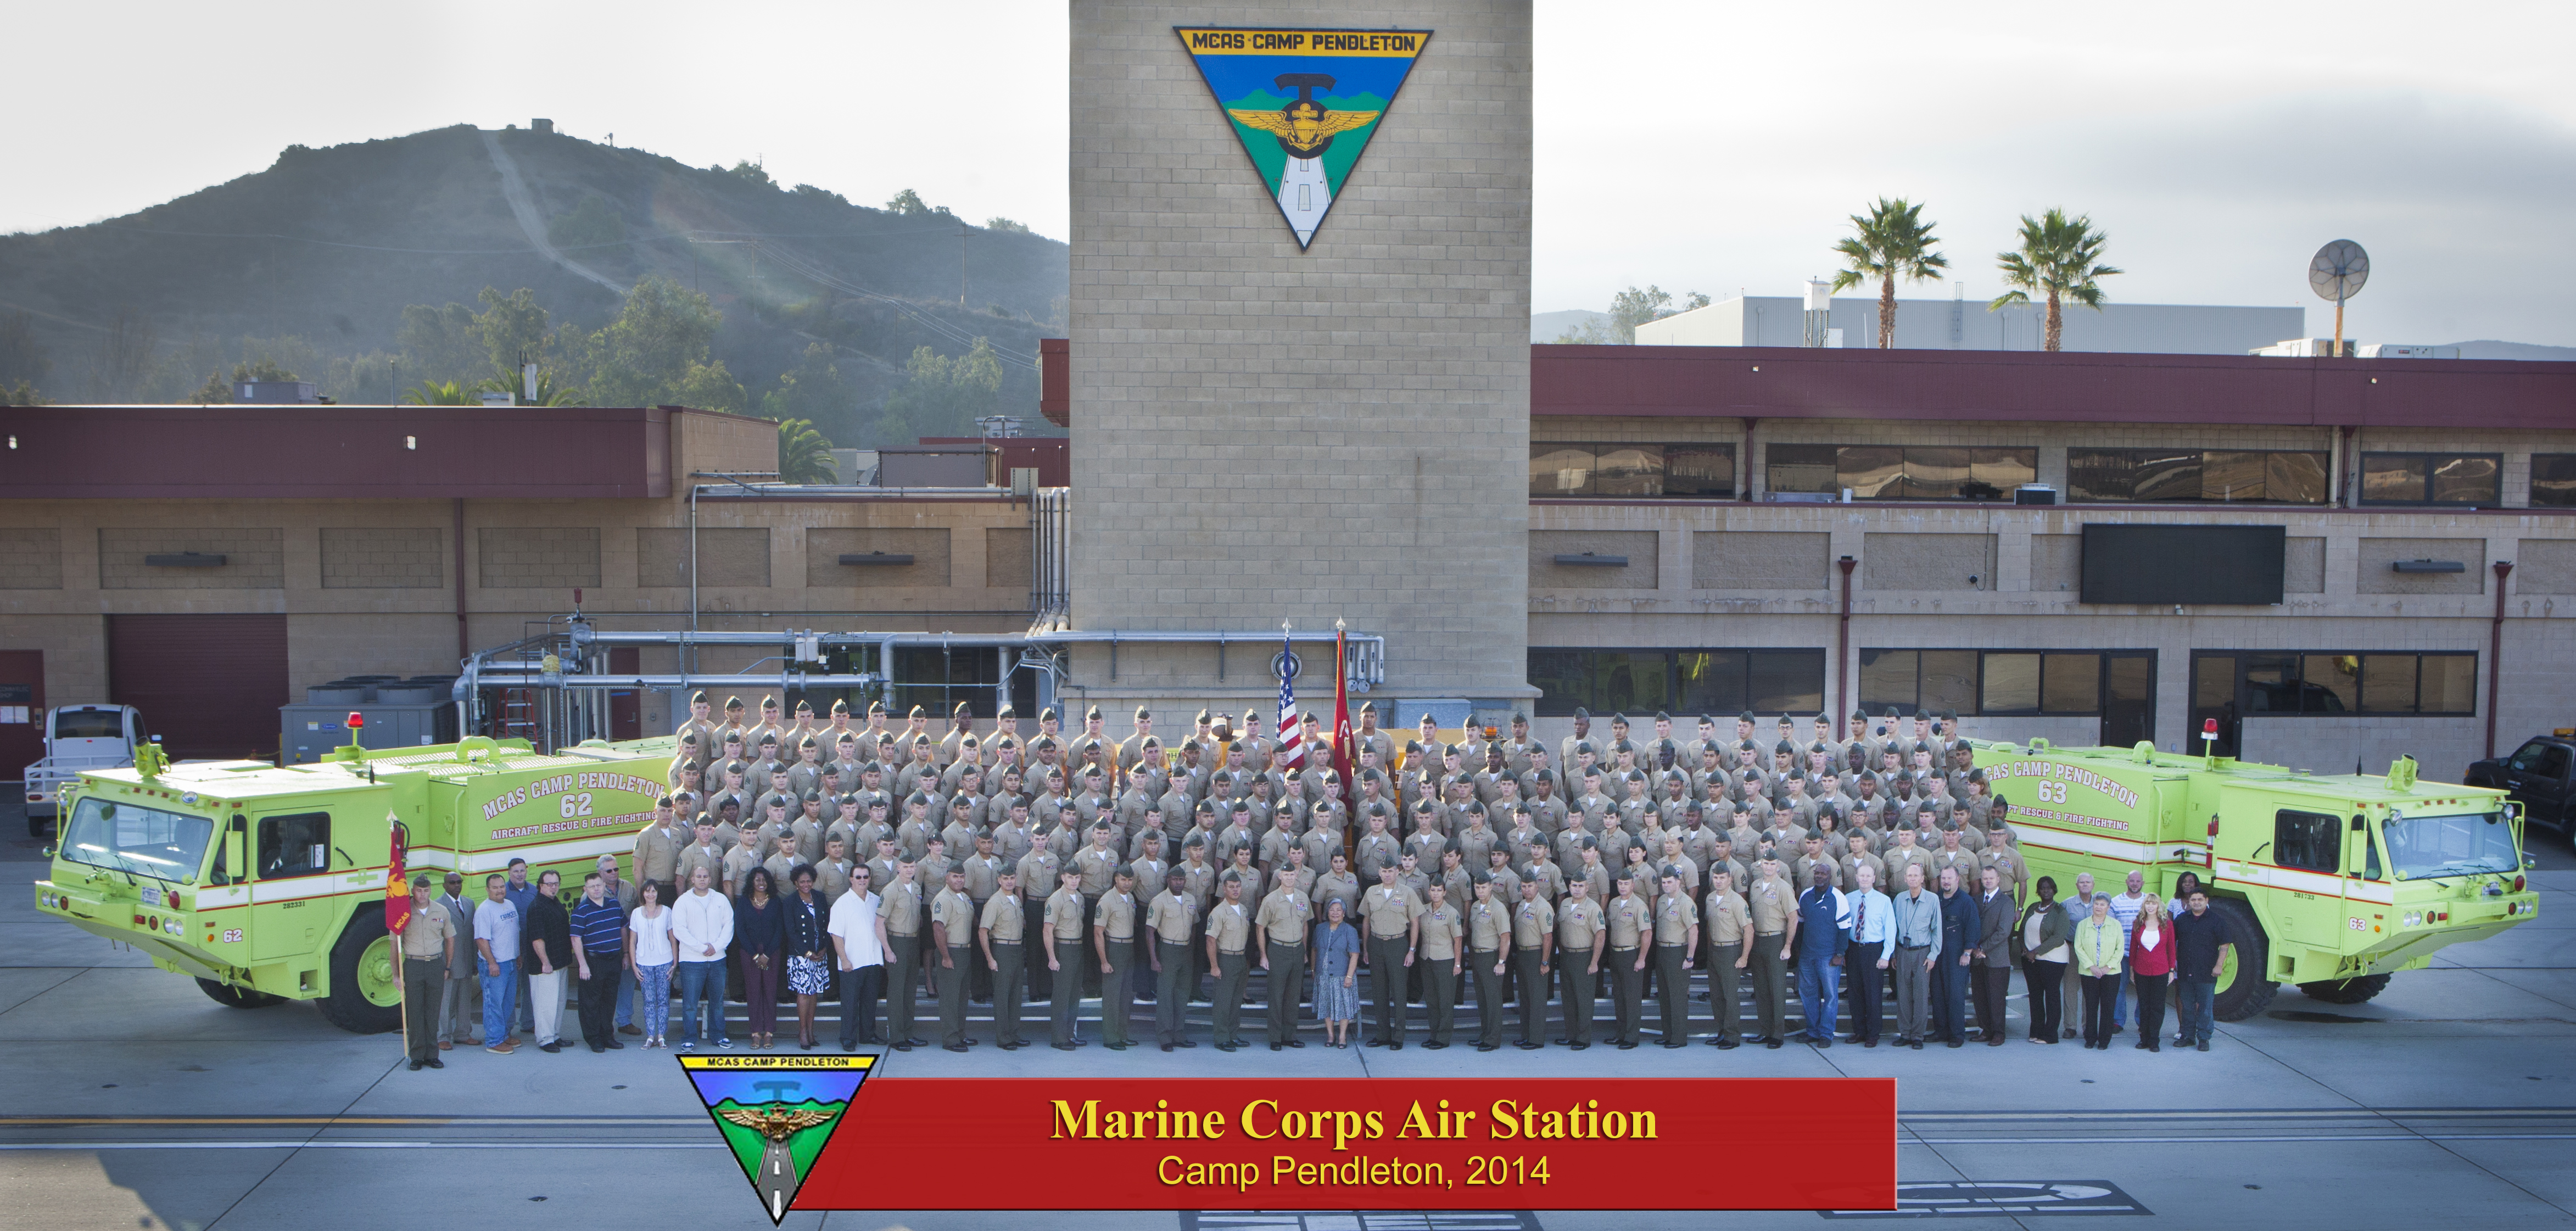 camp pendleton gay dating site Letter to the families and parents to our marines, sailors, family members and friends, welcome congratulations on your assignment to the 2nd battalion, 1st marine division at camp horno, on mcb camp pendleton, california you have joined a proud unit with a long and distinguished combat history dating back to the early 1920's 2/1 has .